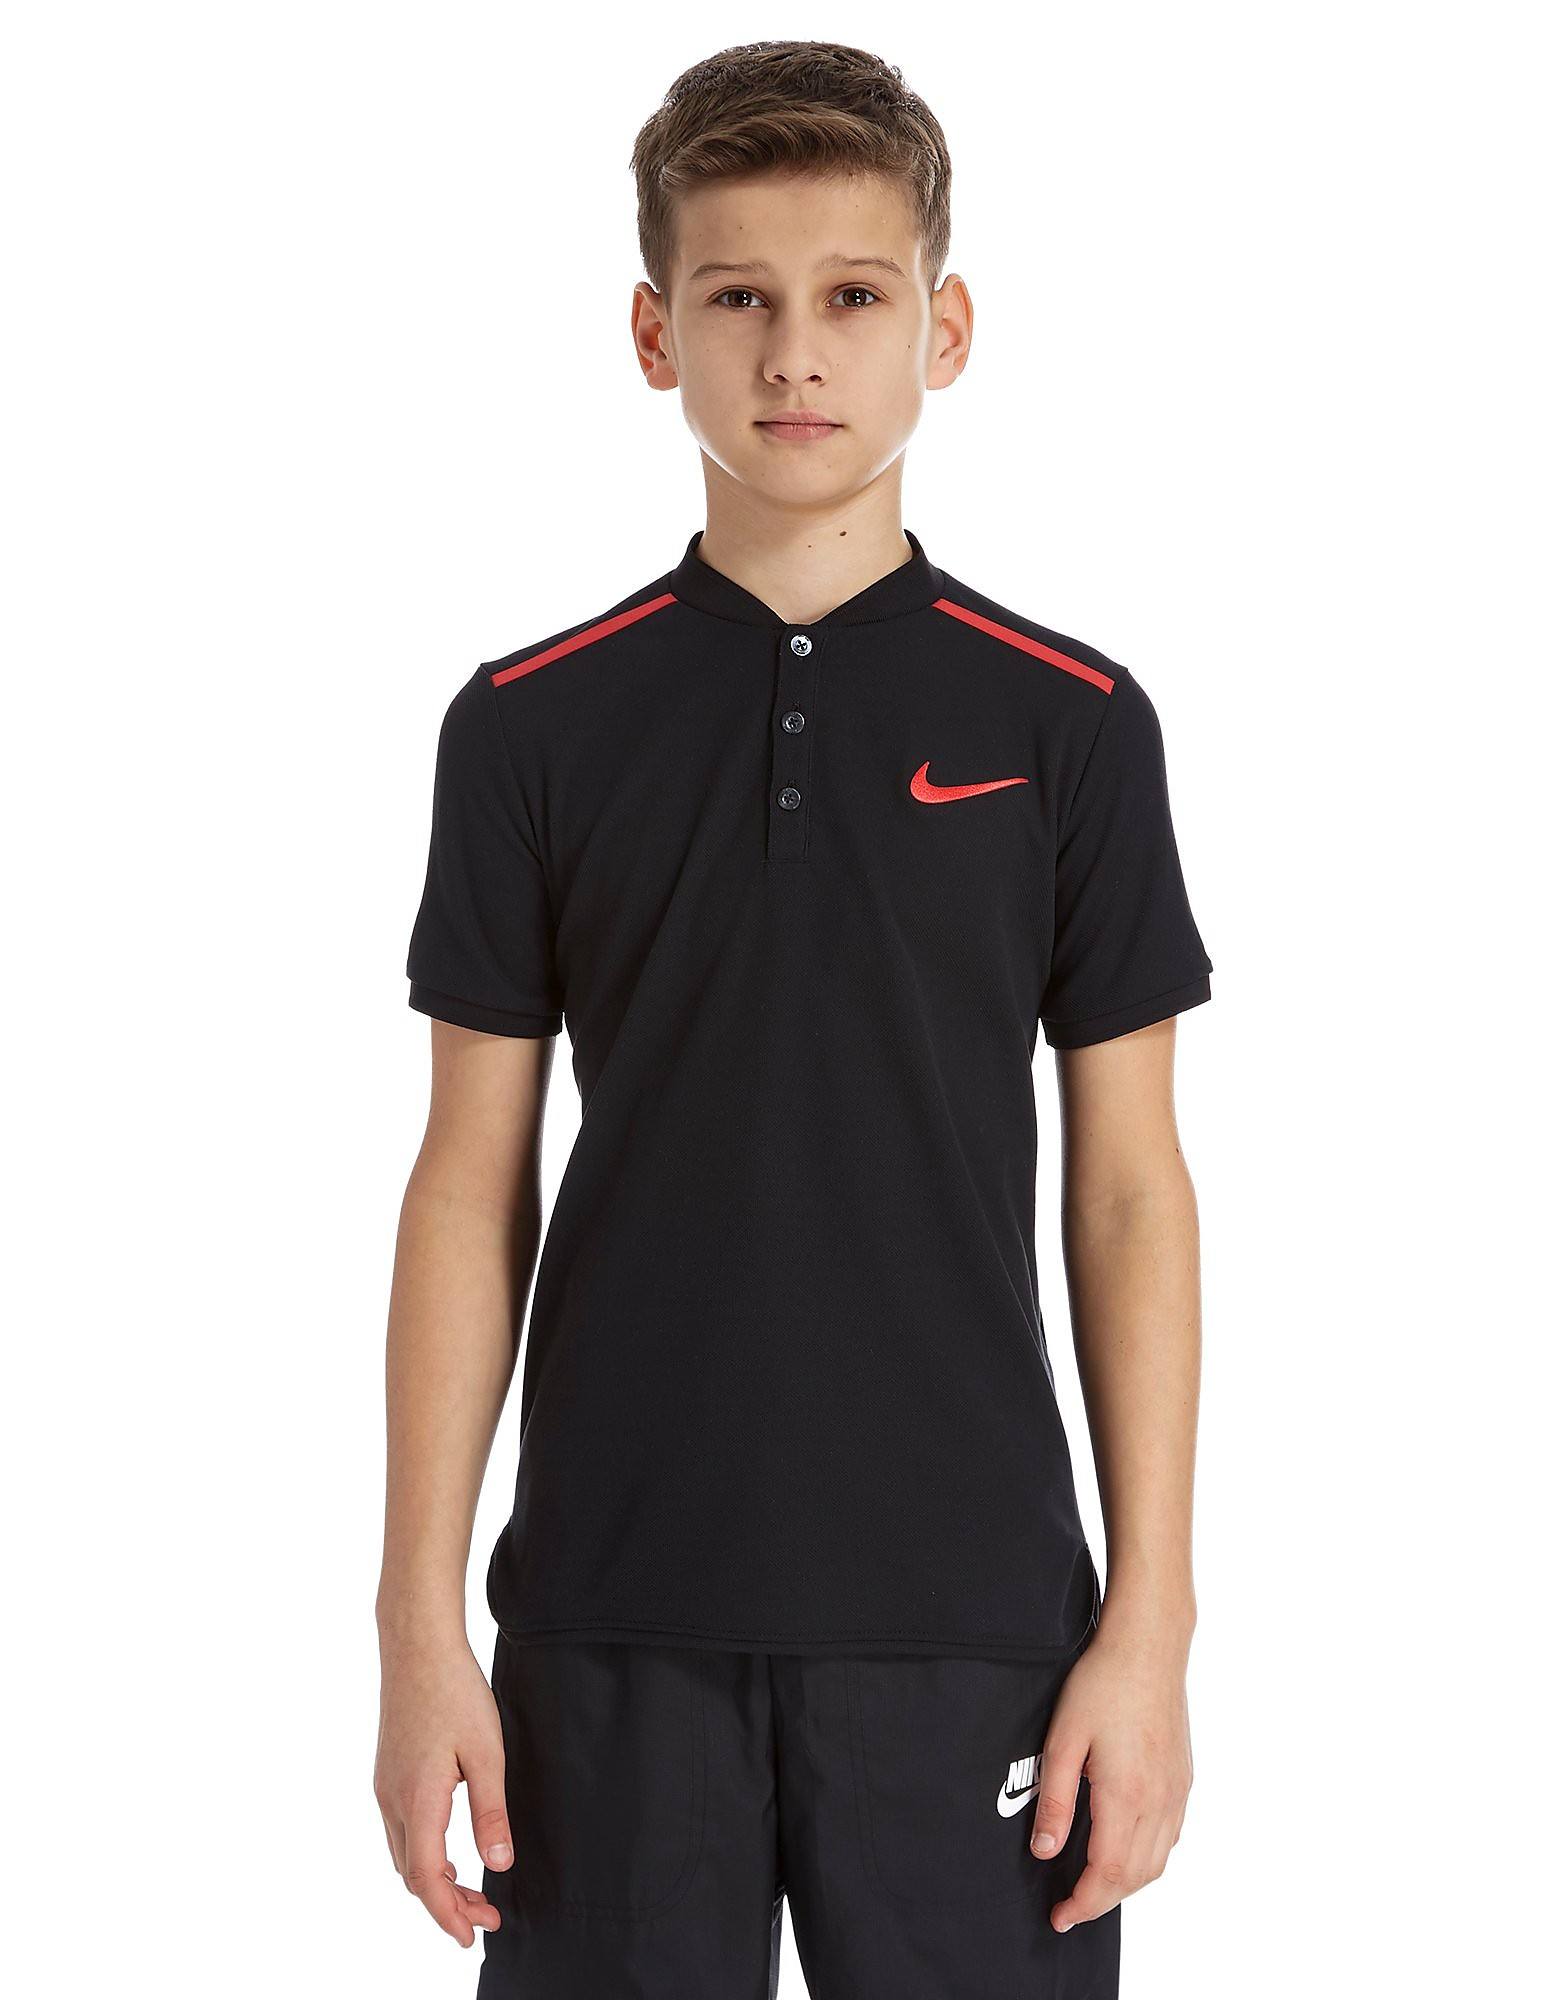 Nike Advantage Polo Shirt Junior